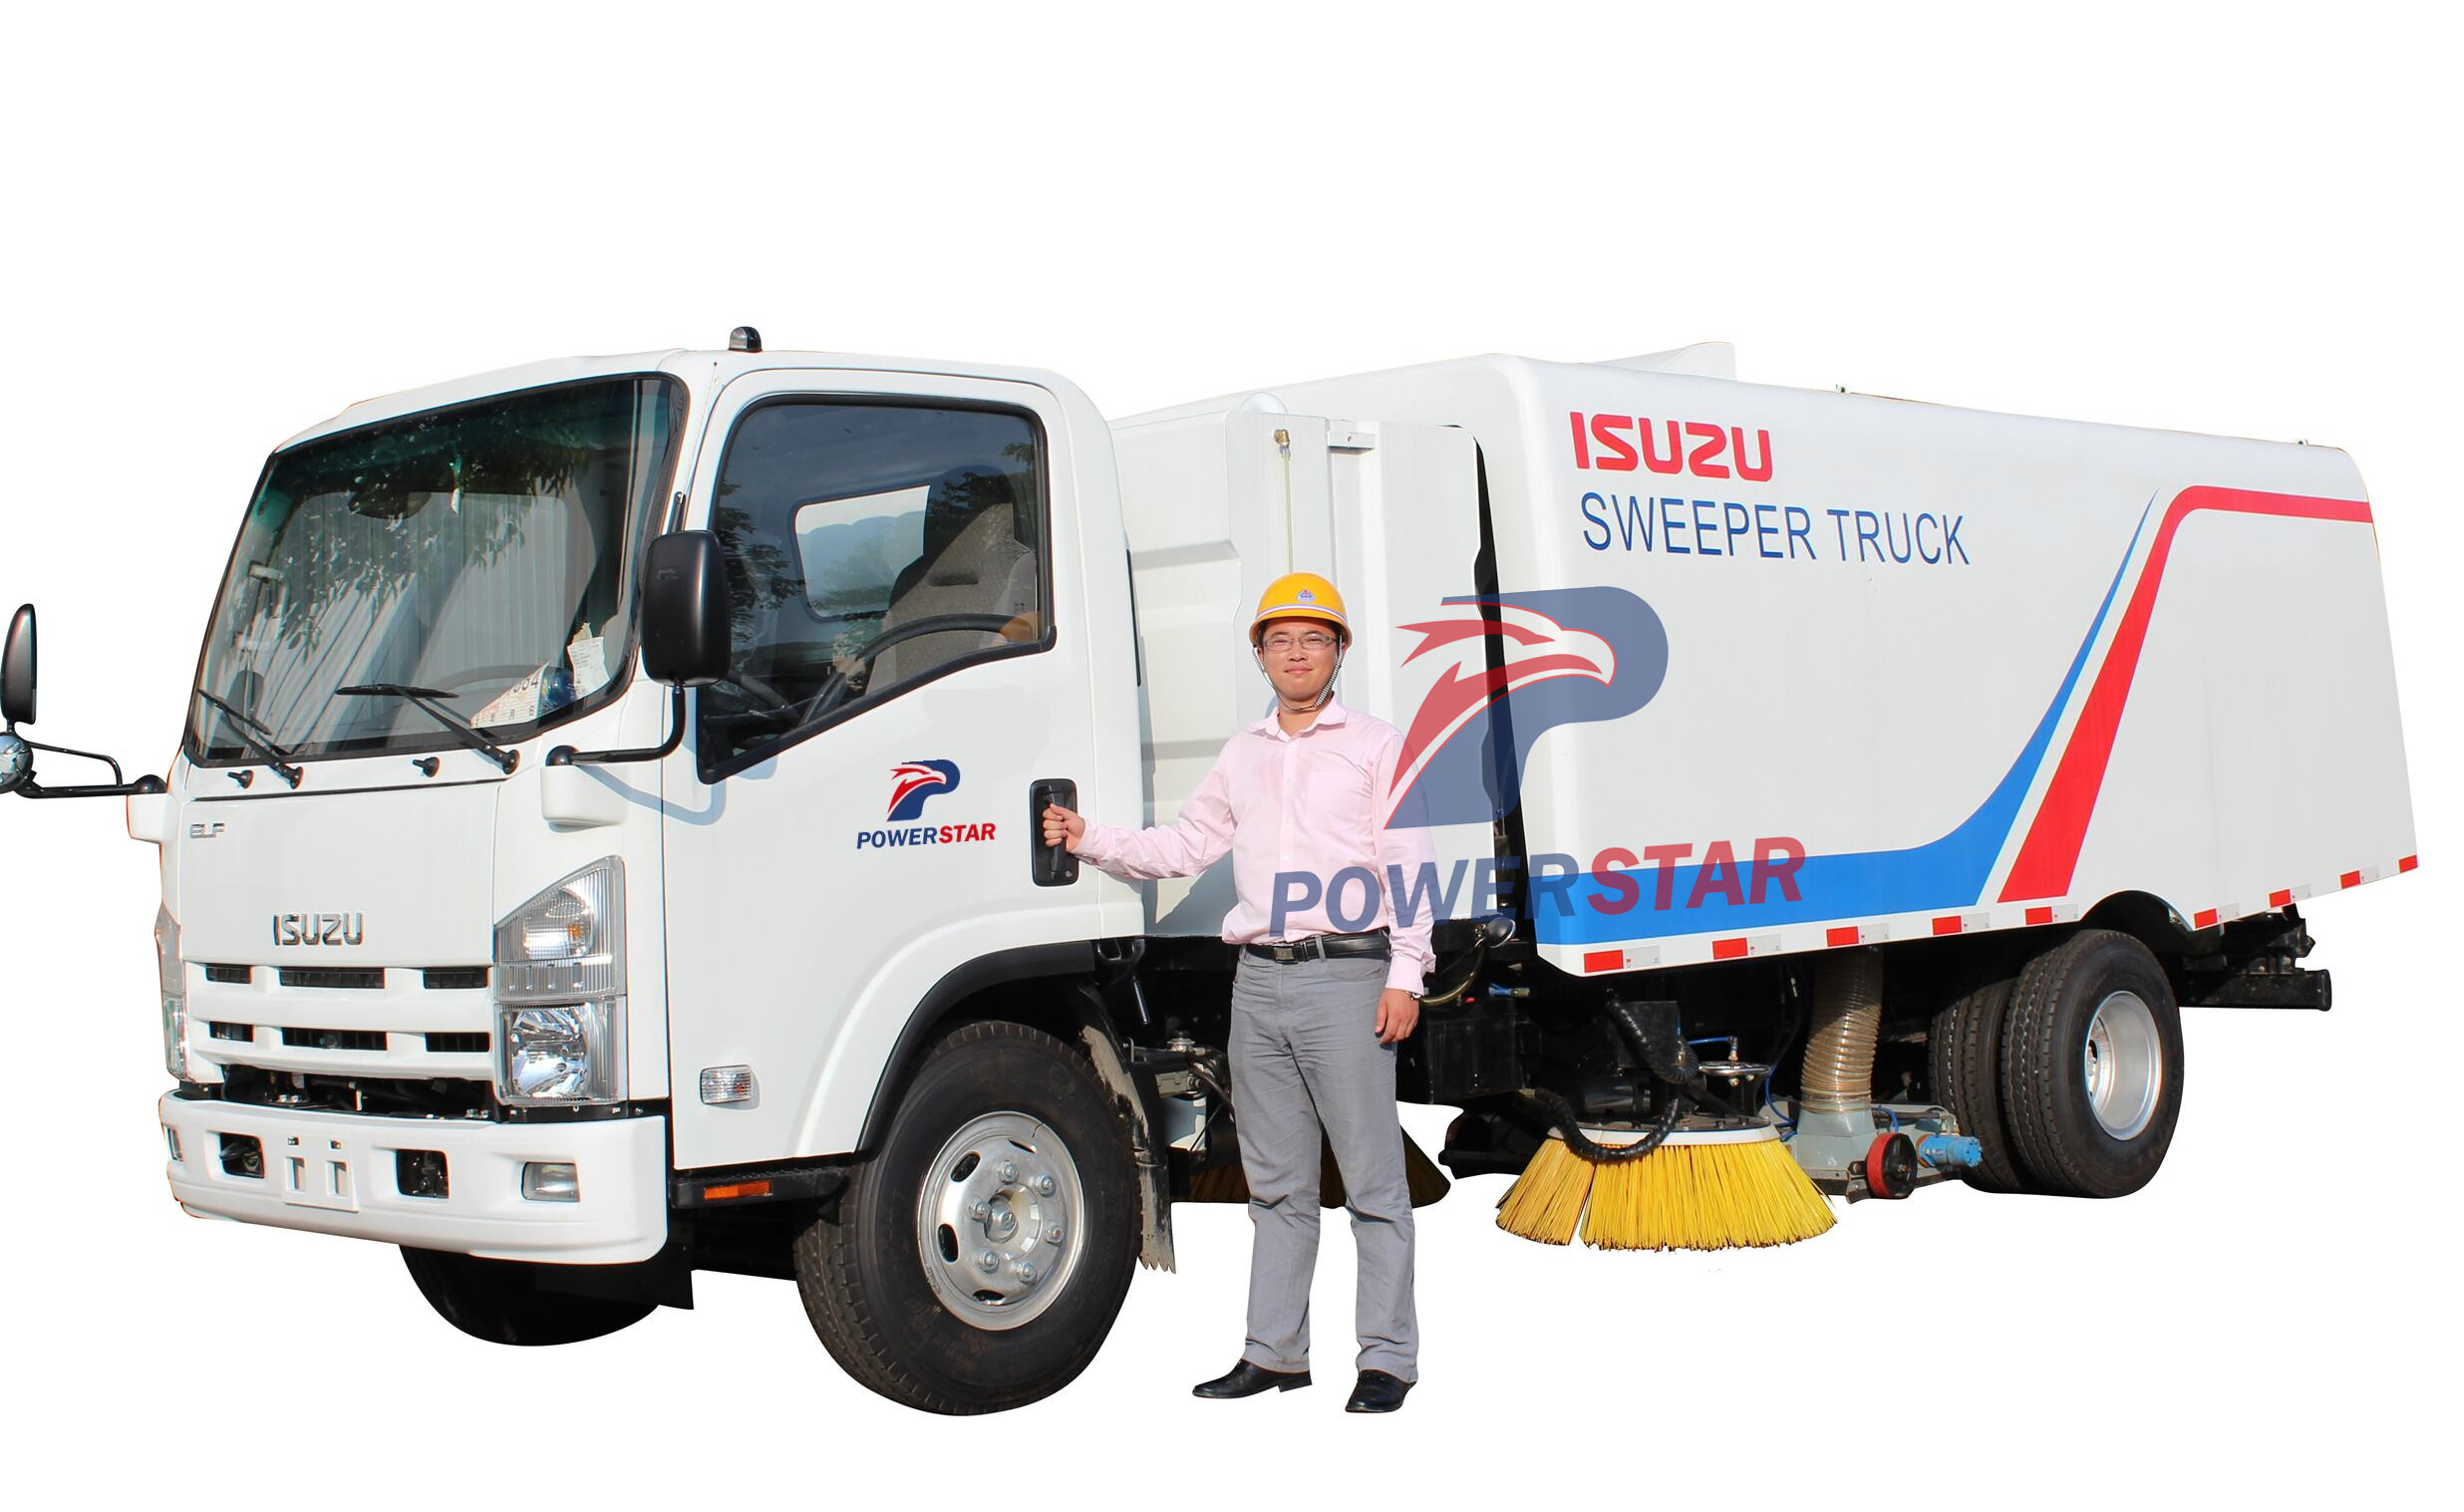 Pictures for KATO Sanitation Vacuum Road Sweeper Truck Isuzu 8m3